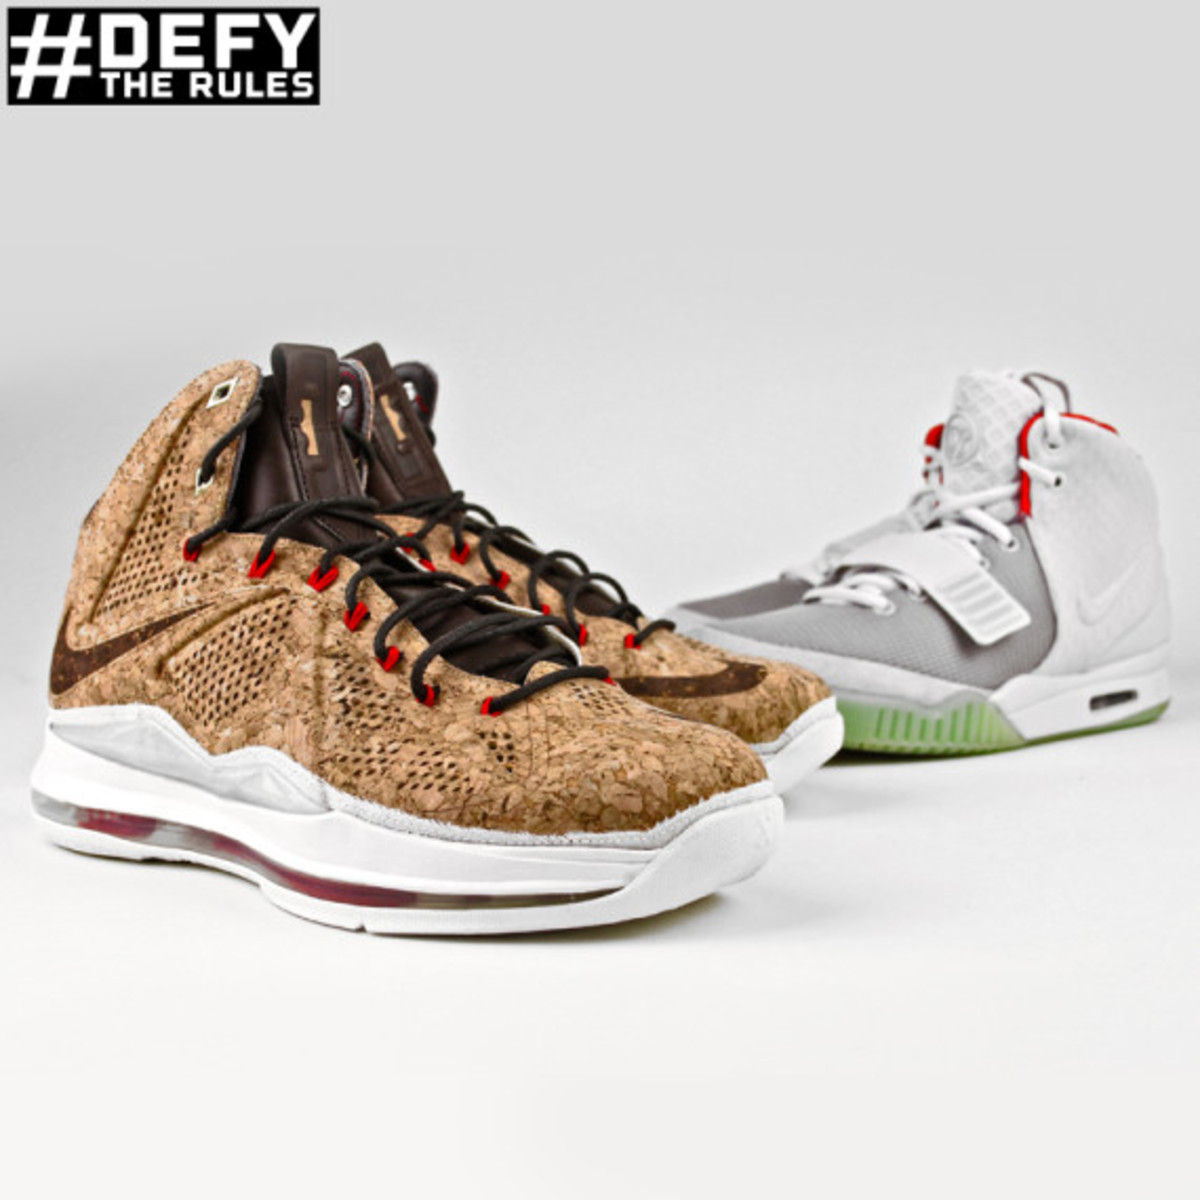 villa-2013-refresh-hunt-featuring-corks-and-yeezys-03